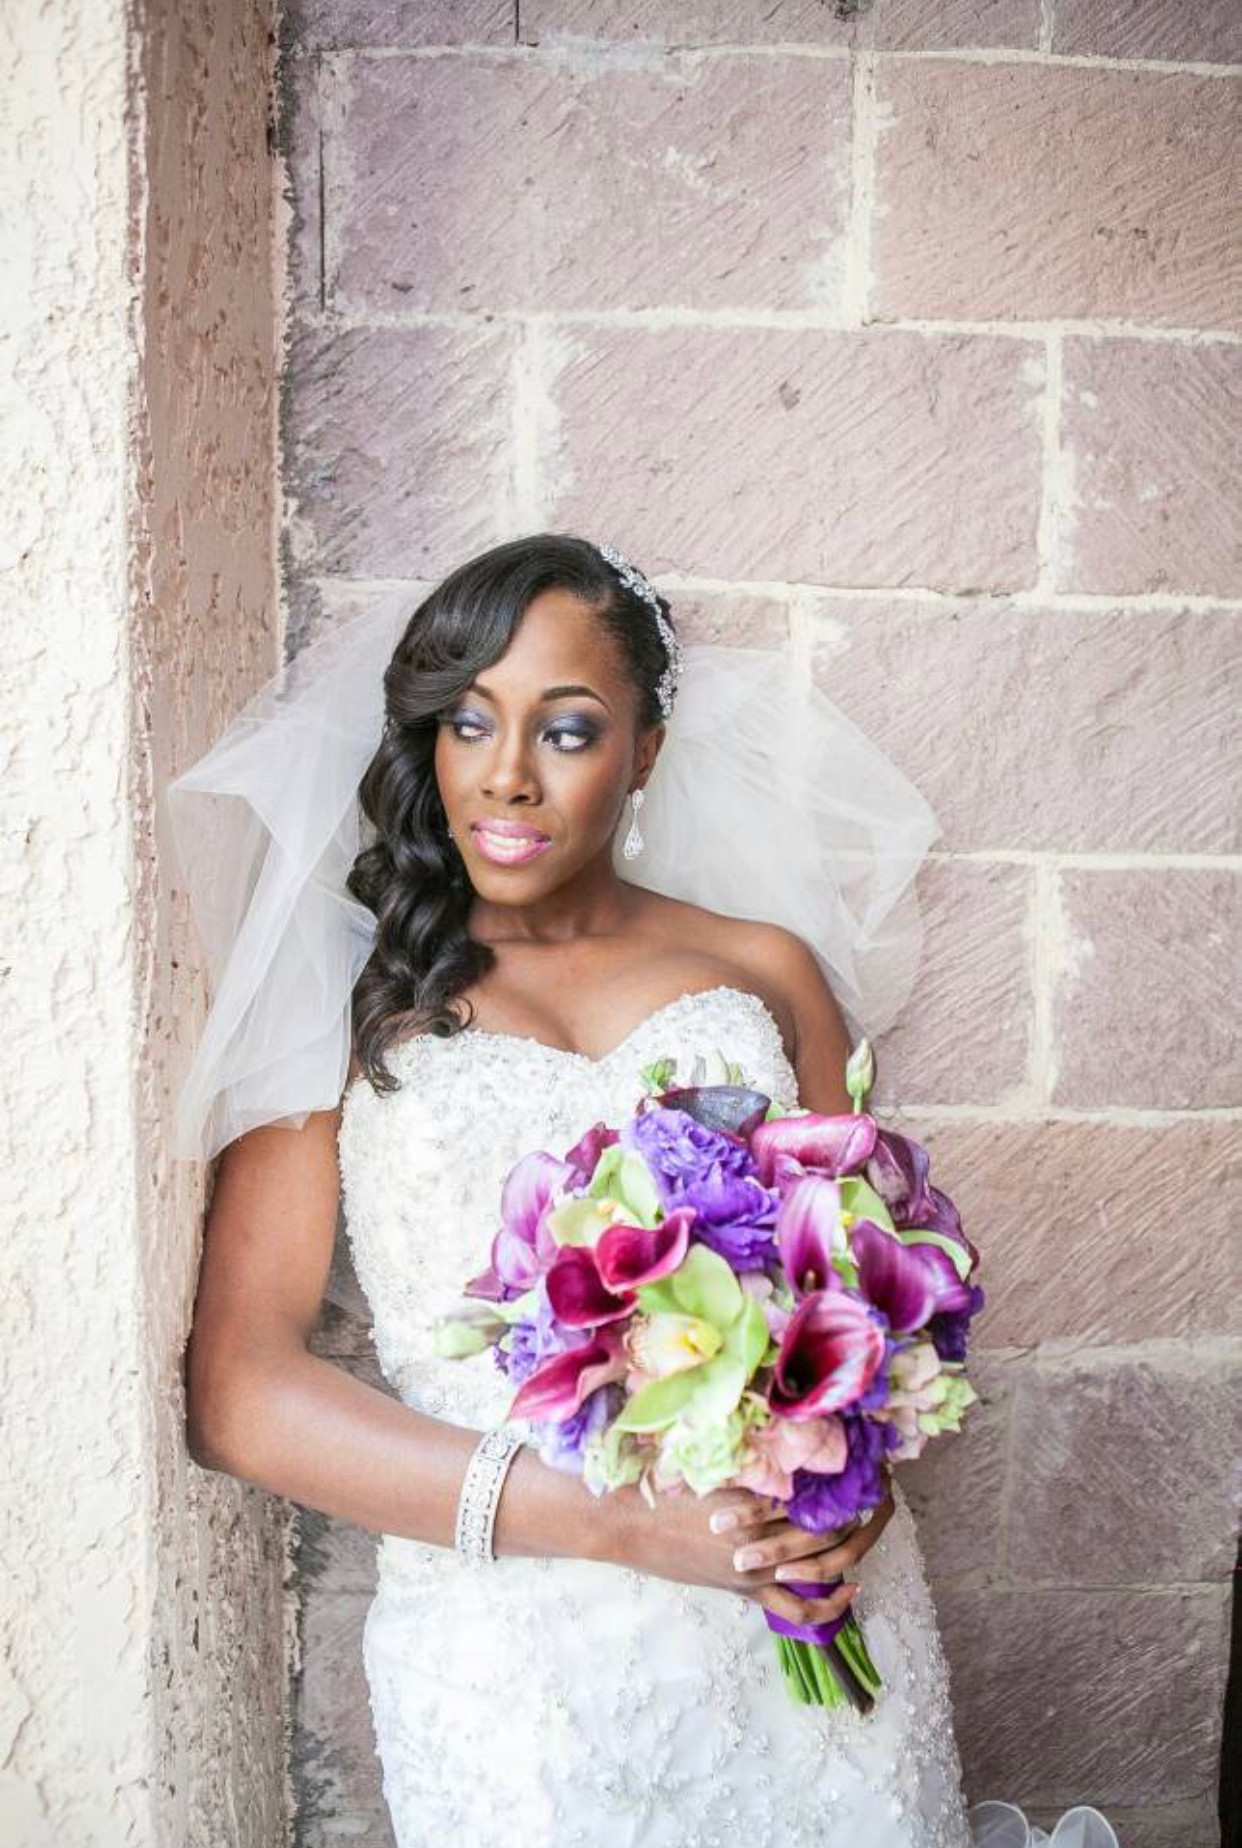 The Bridal Experience (On Location)